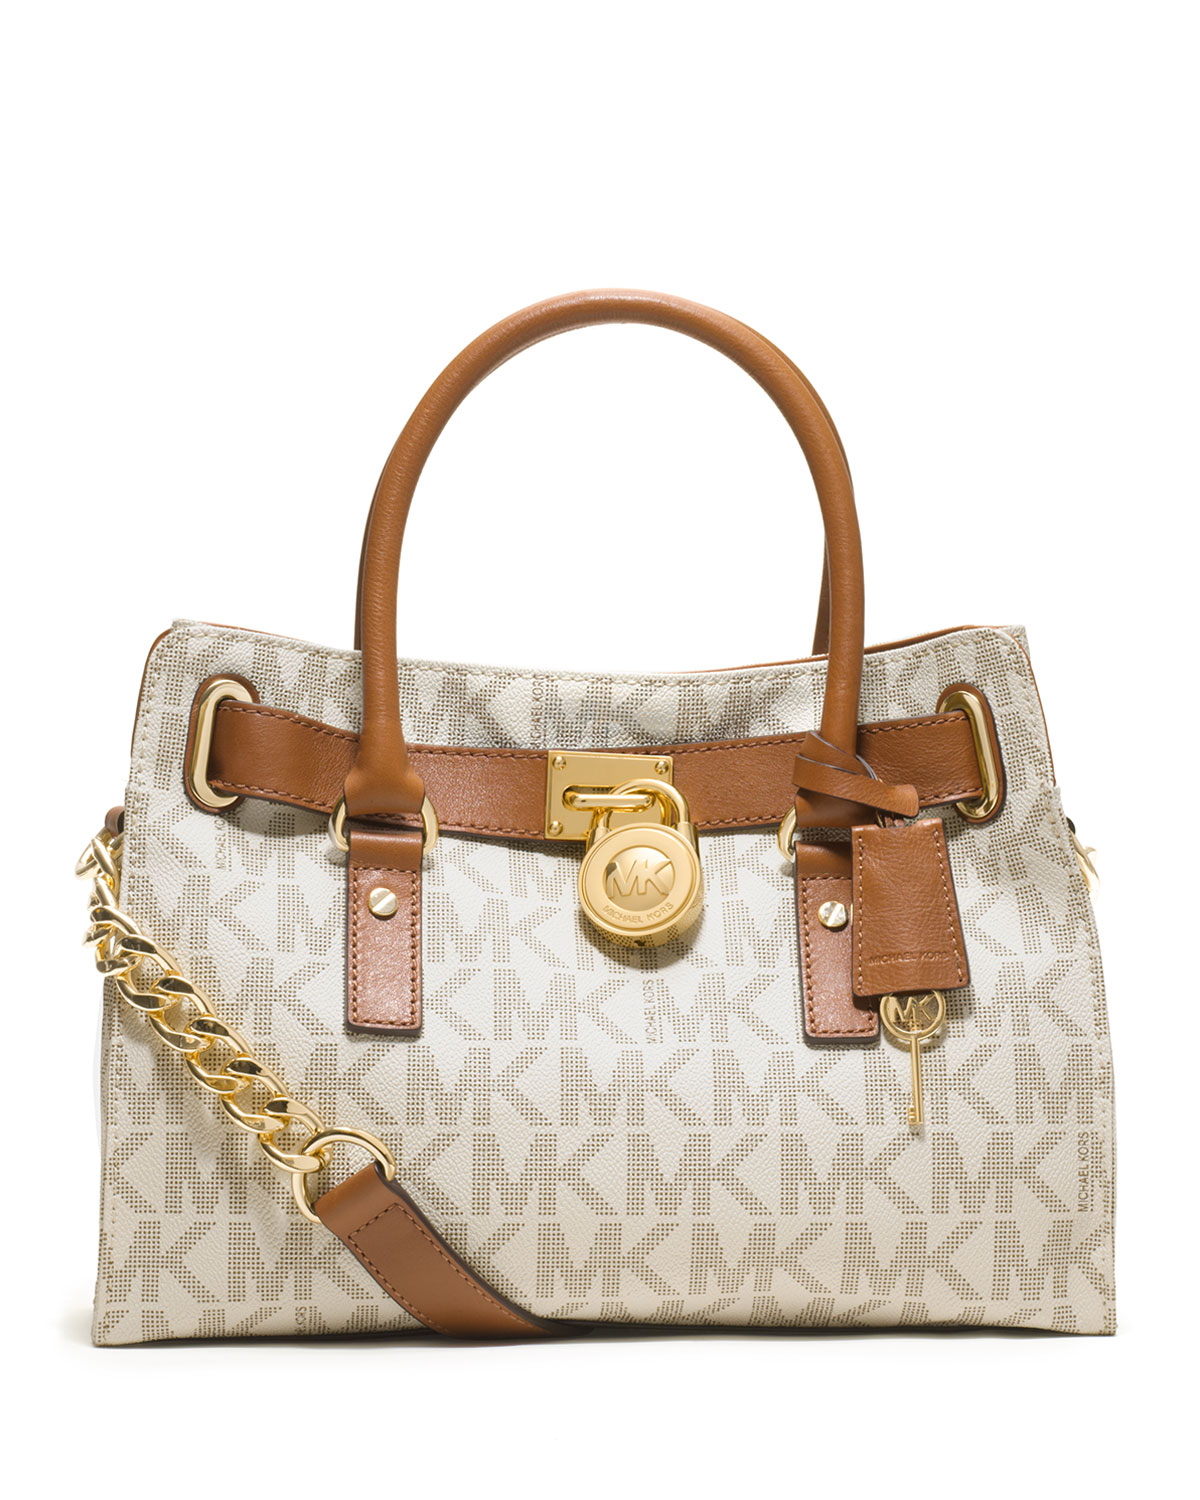 A Michael Kors Jet Set tote crafted in signature logo print PVC with silver-tone hardware, leather trim and a fully lined interior. This Michael Kors Jet Set tote features two main open pockets, a center zip pocket, an interior zip pocket, interior wall pockets and two exterior side slip pockets; two adjustable leather handles with a